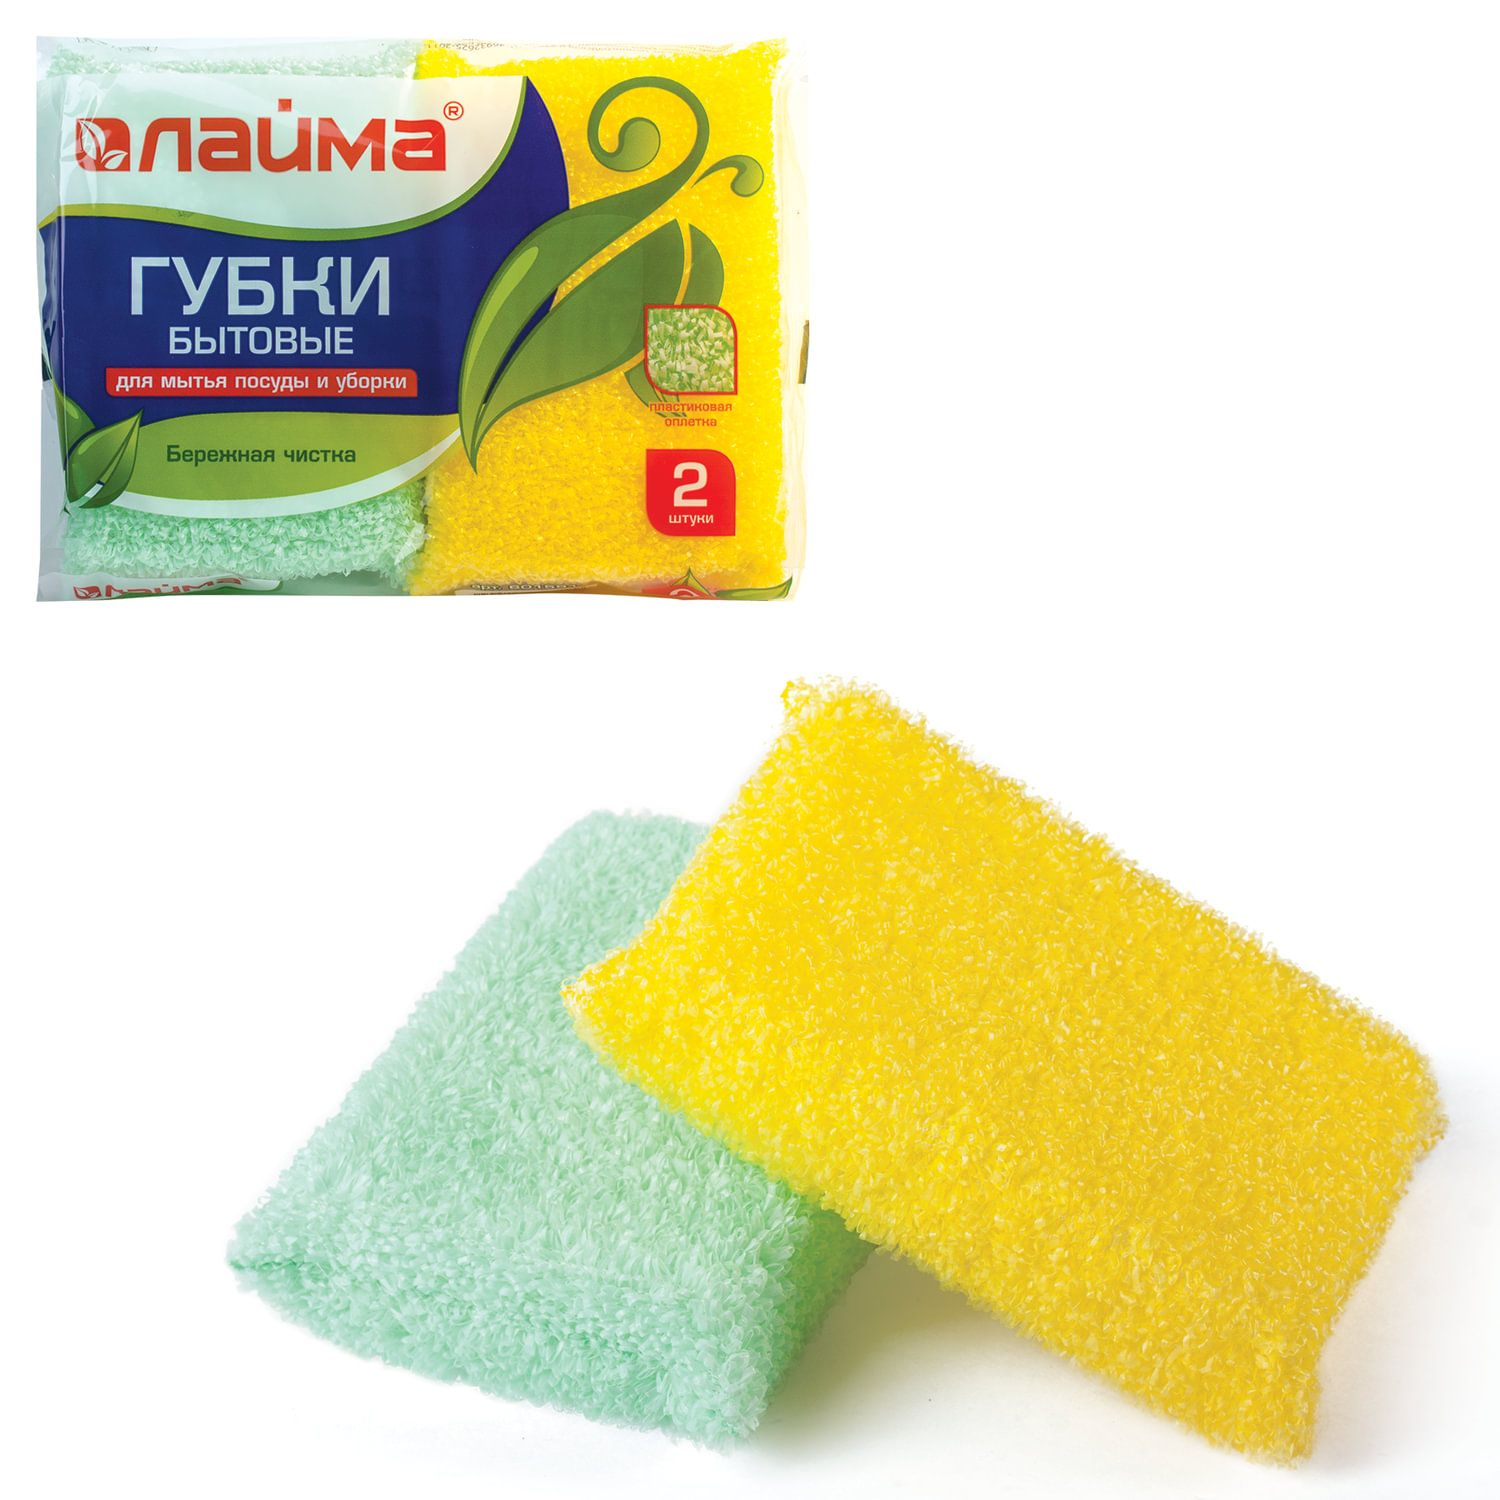 LIMA / Household sponges, set of 2 pcs., Foam rubber in a plastic sheath, height 32 x width 120 x depth 80 mm